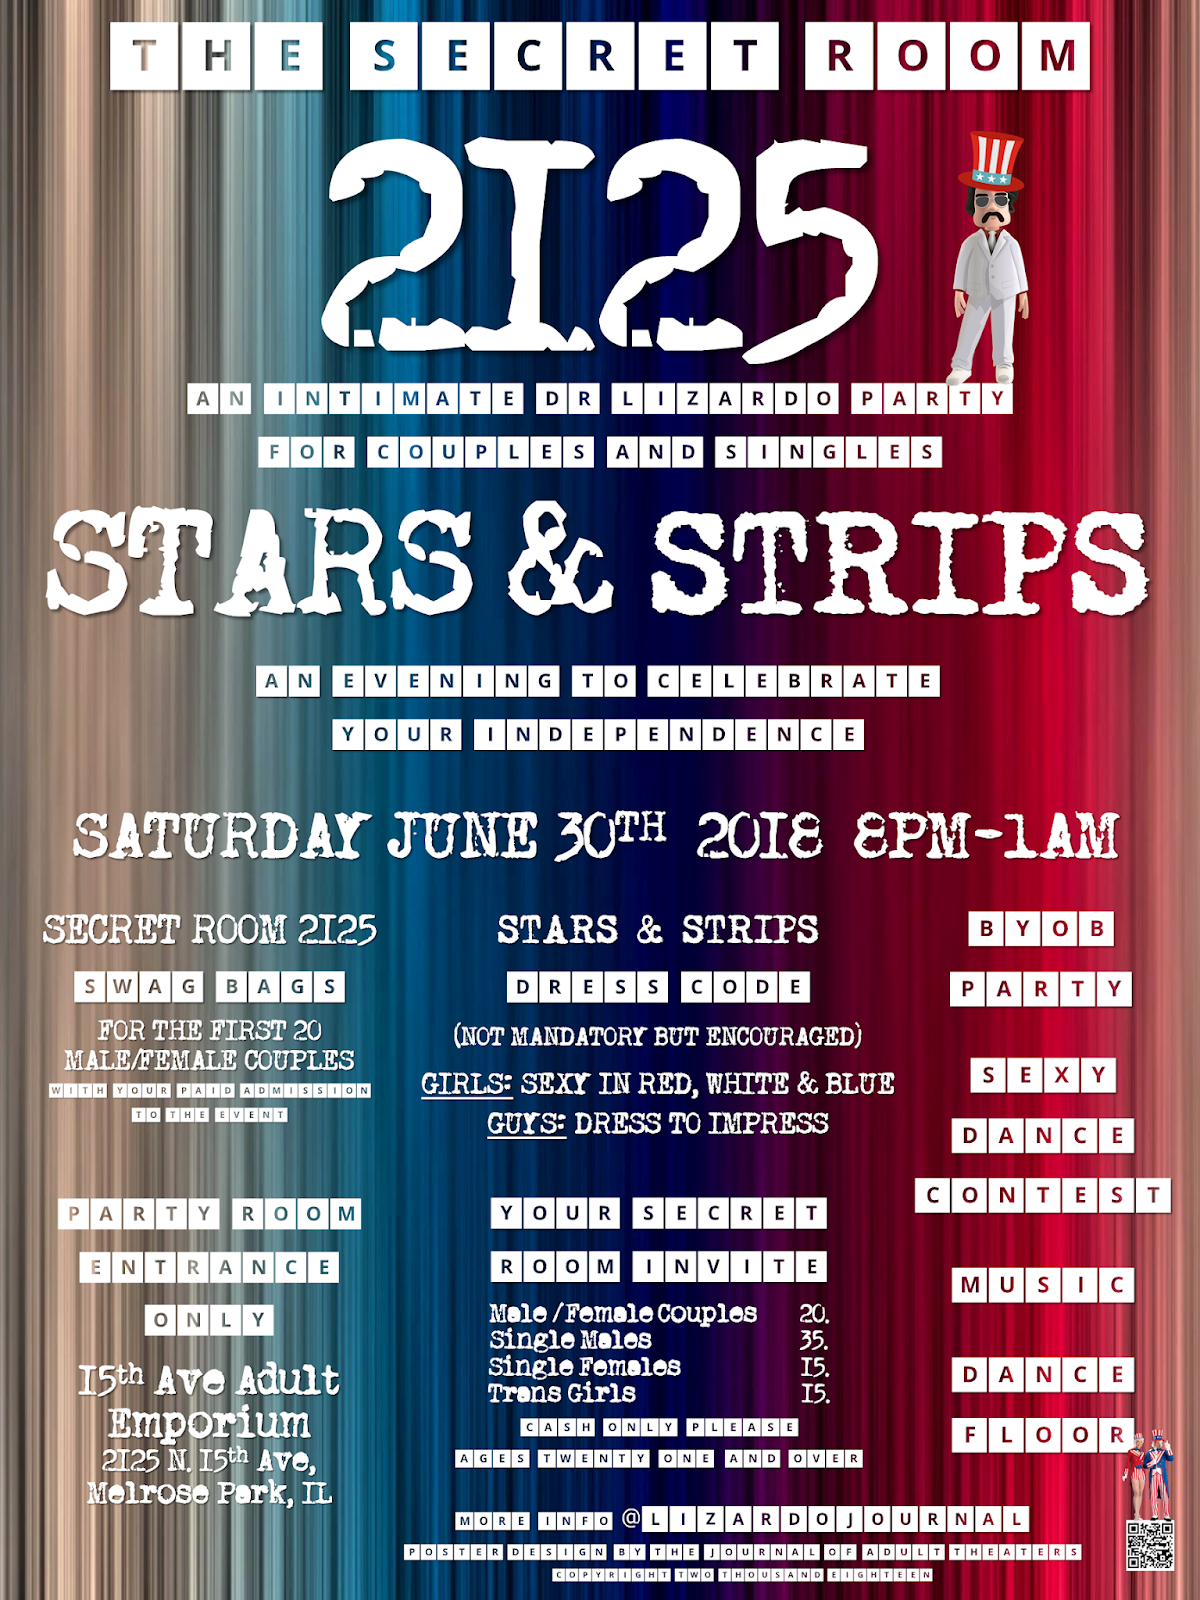 The Secret Room 2125: Stars & Strips at 15th Ave. Adult Theater Party Room in Chicago!